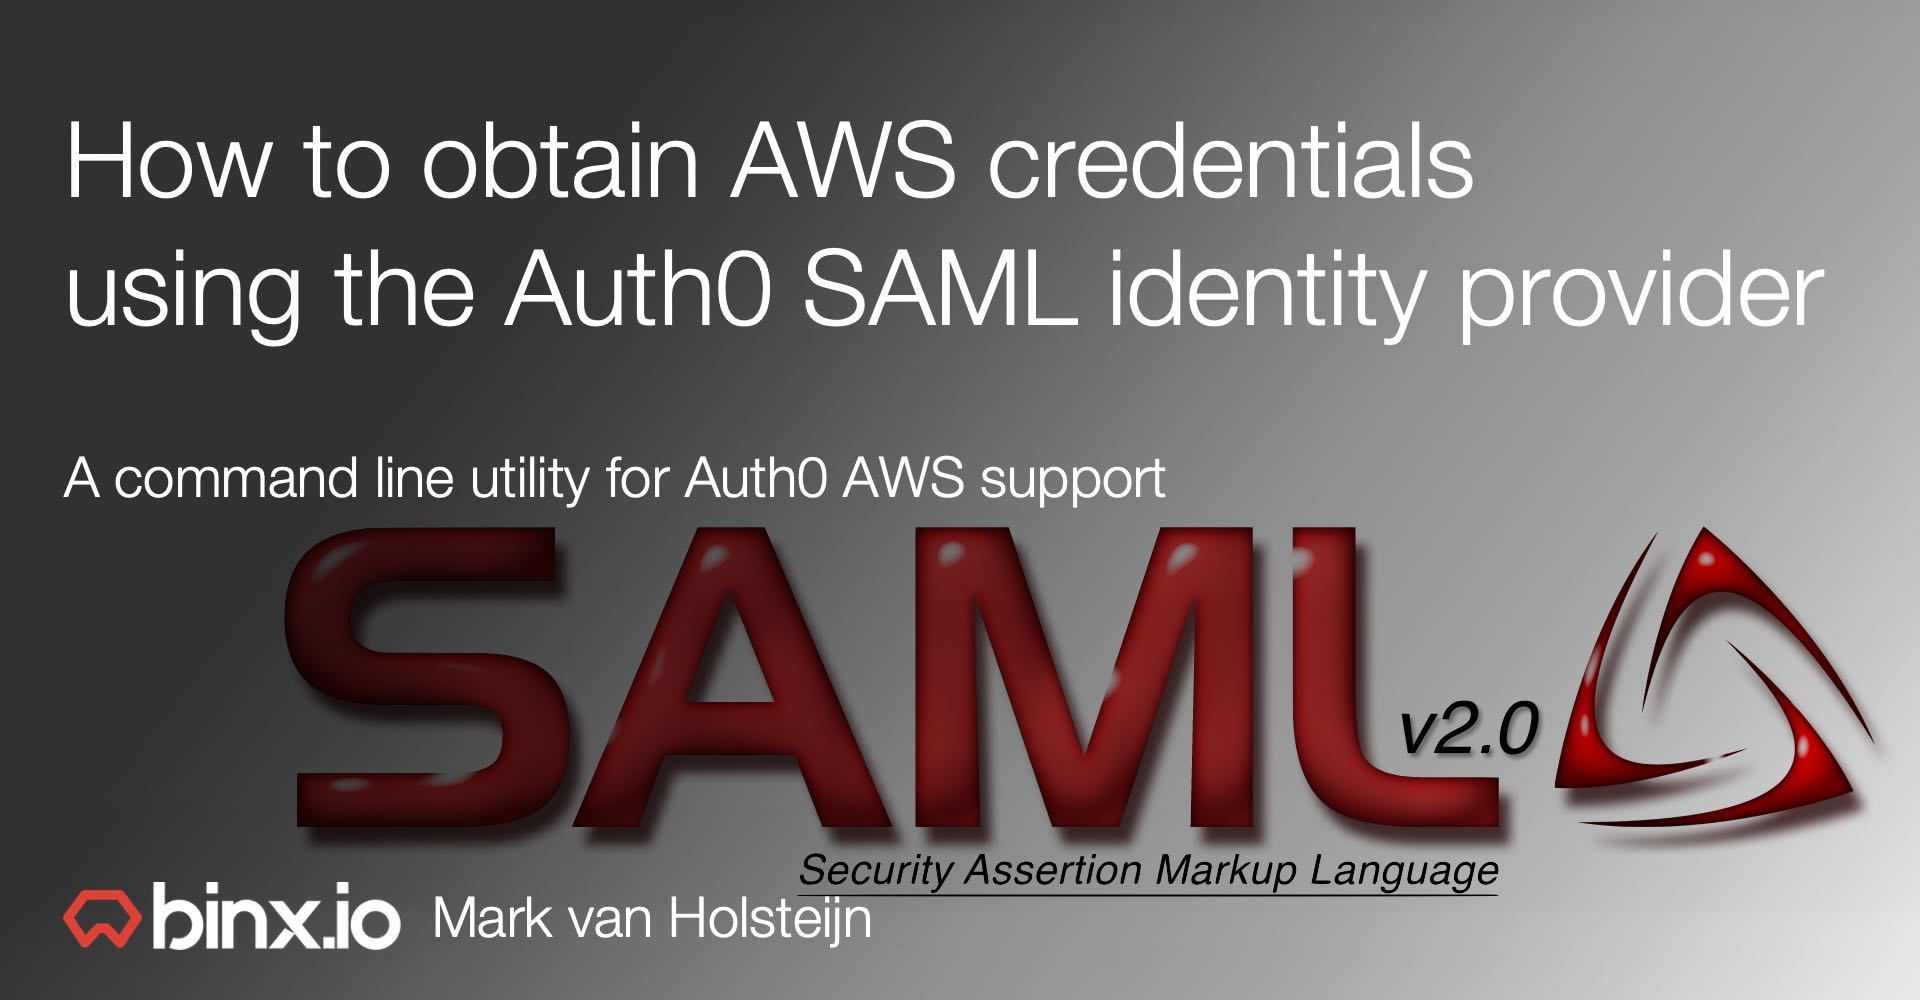 How to obtain AWS credentials using the Auth0 SAML identity